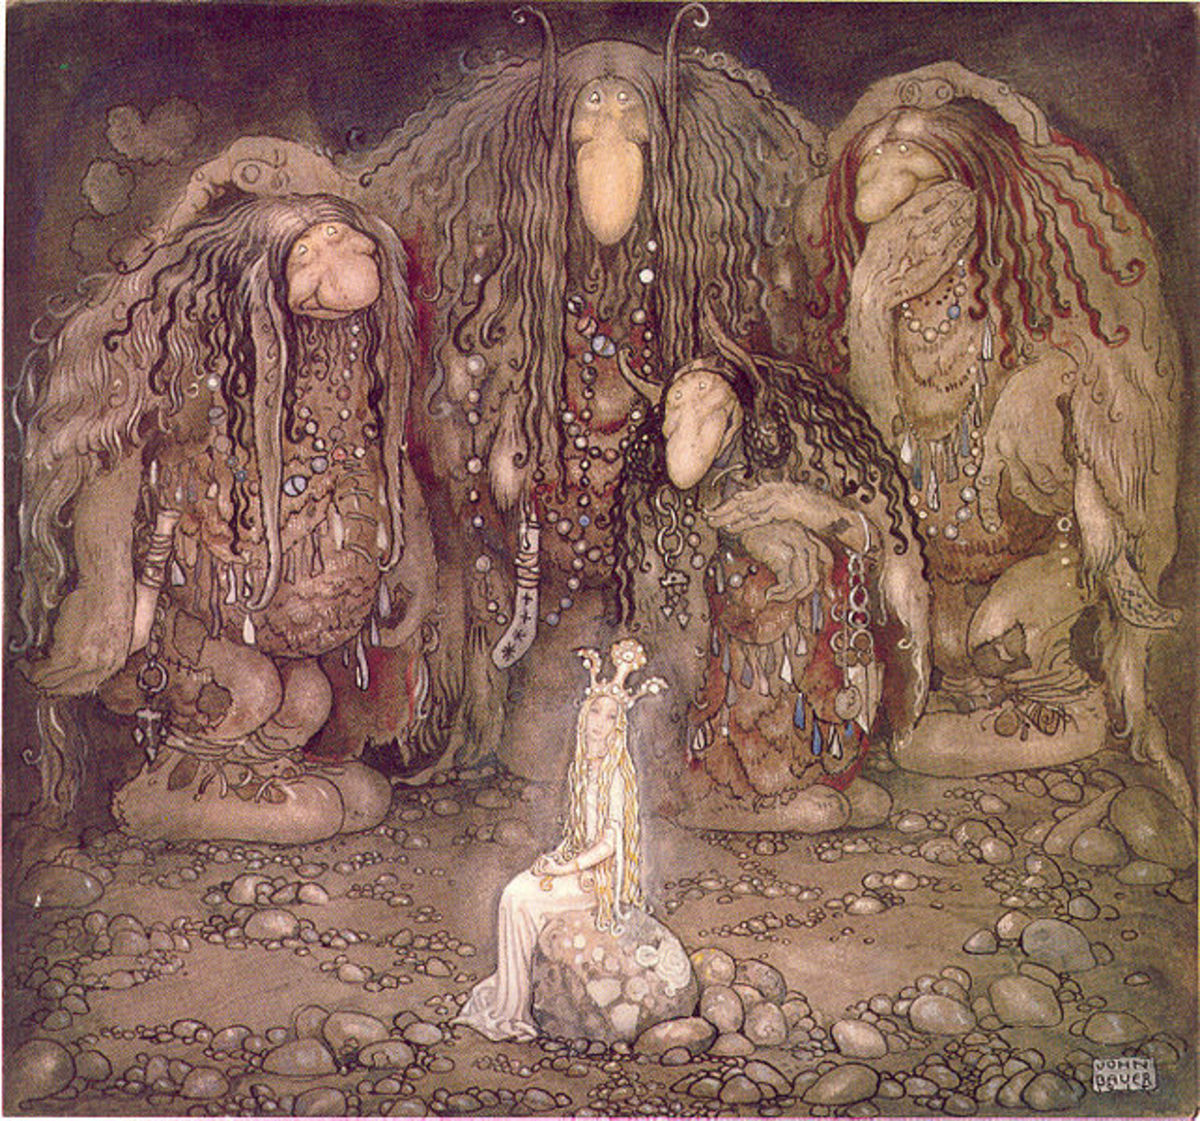 John Bauer  is famous for his images of Trolls